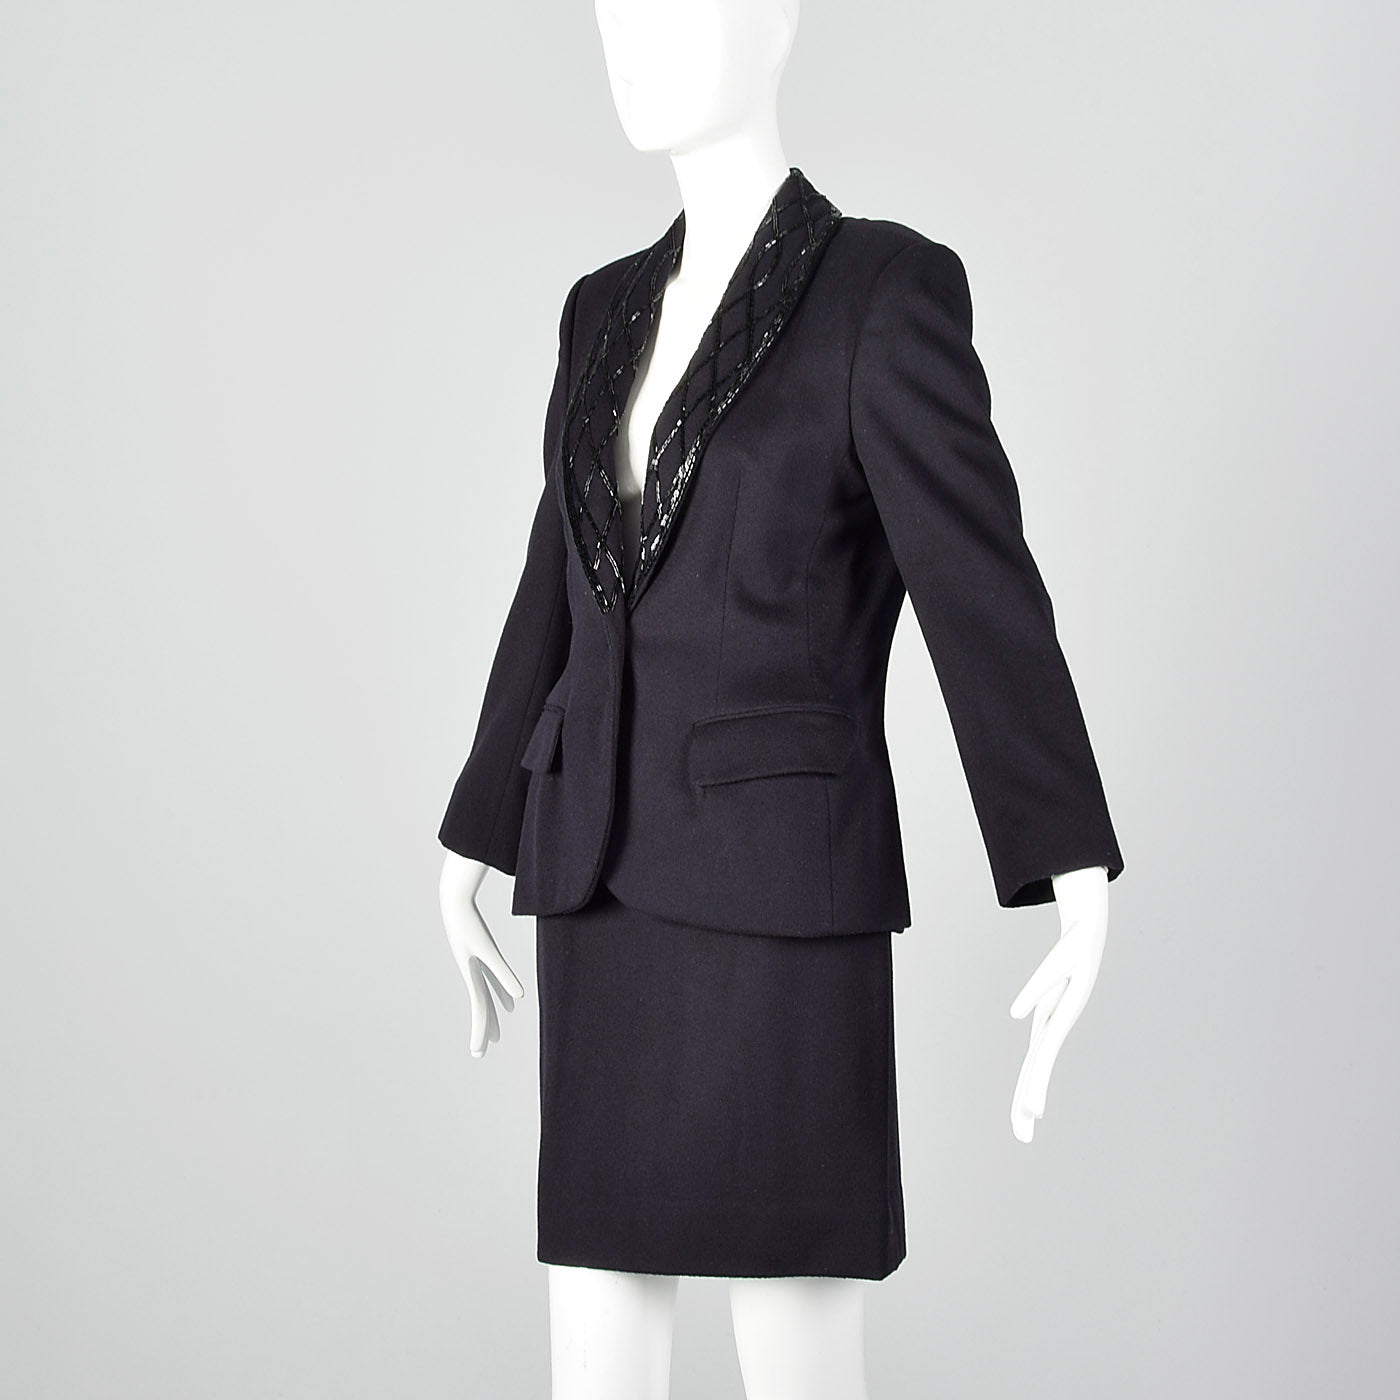 1970s Calvin Klein Dark Navy Skirt Suit with Beaded Lapels